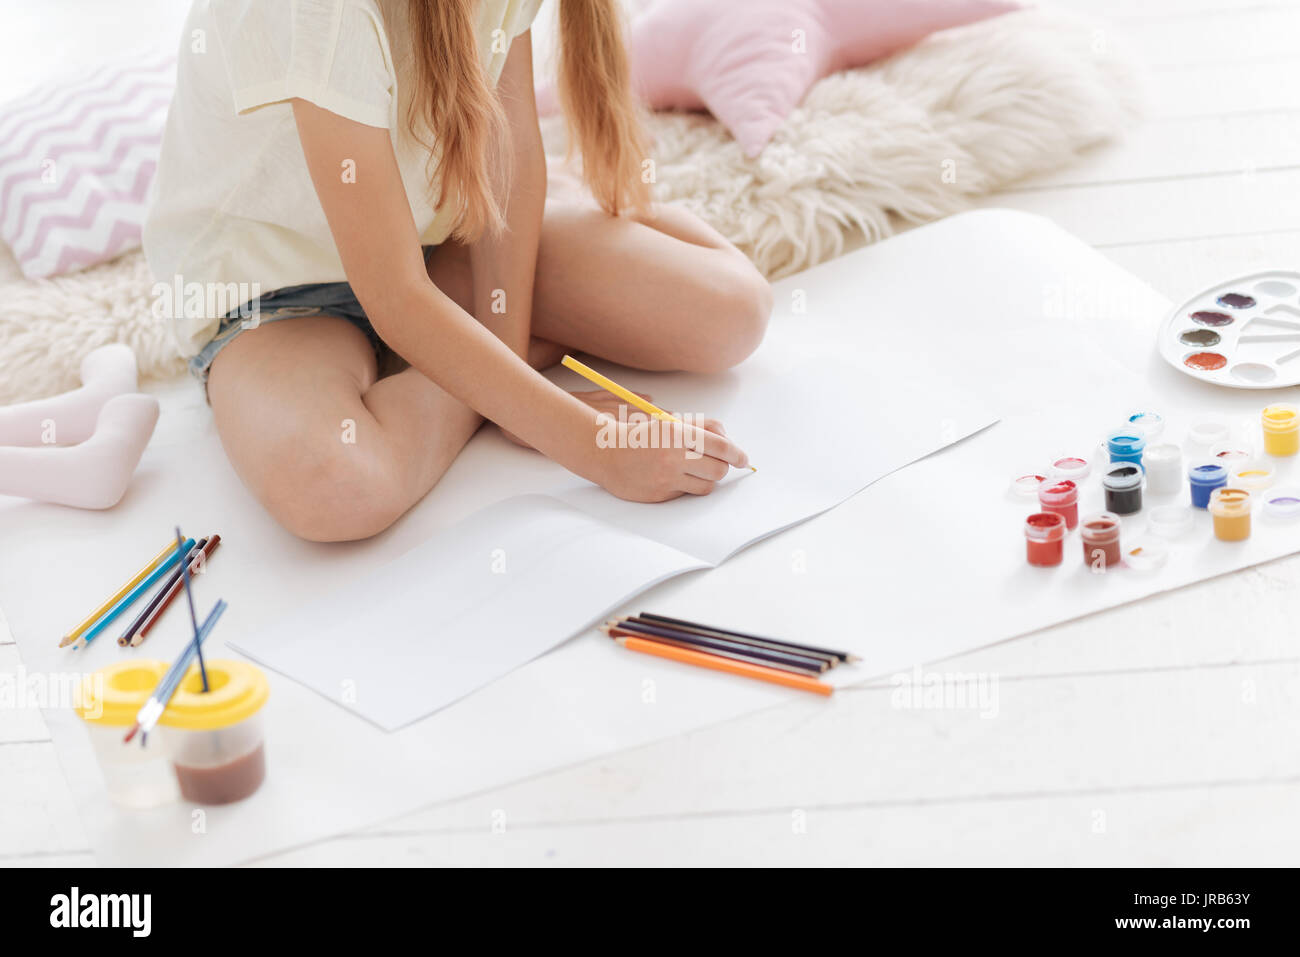 Close up of girl drawing with pencils - Stock Image